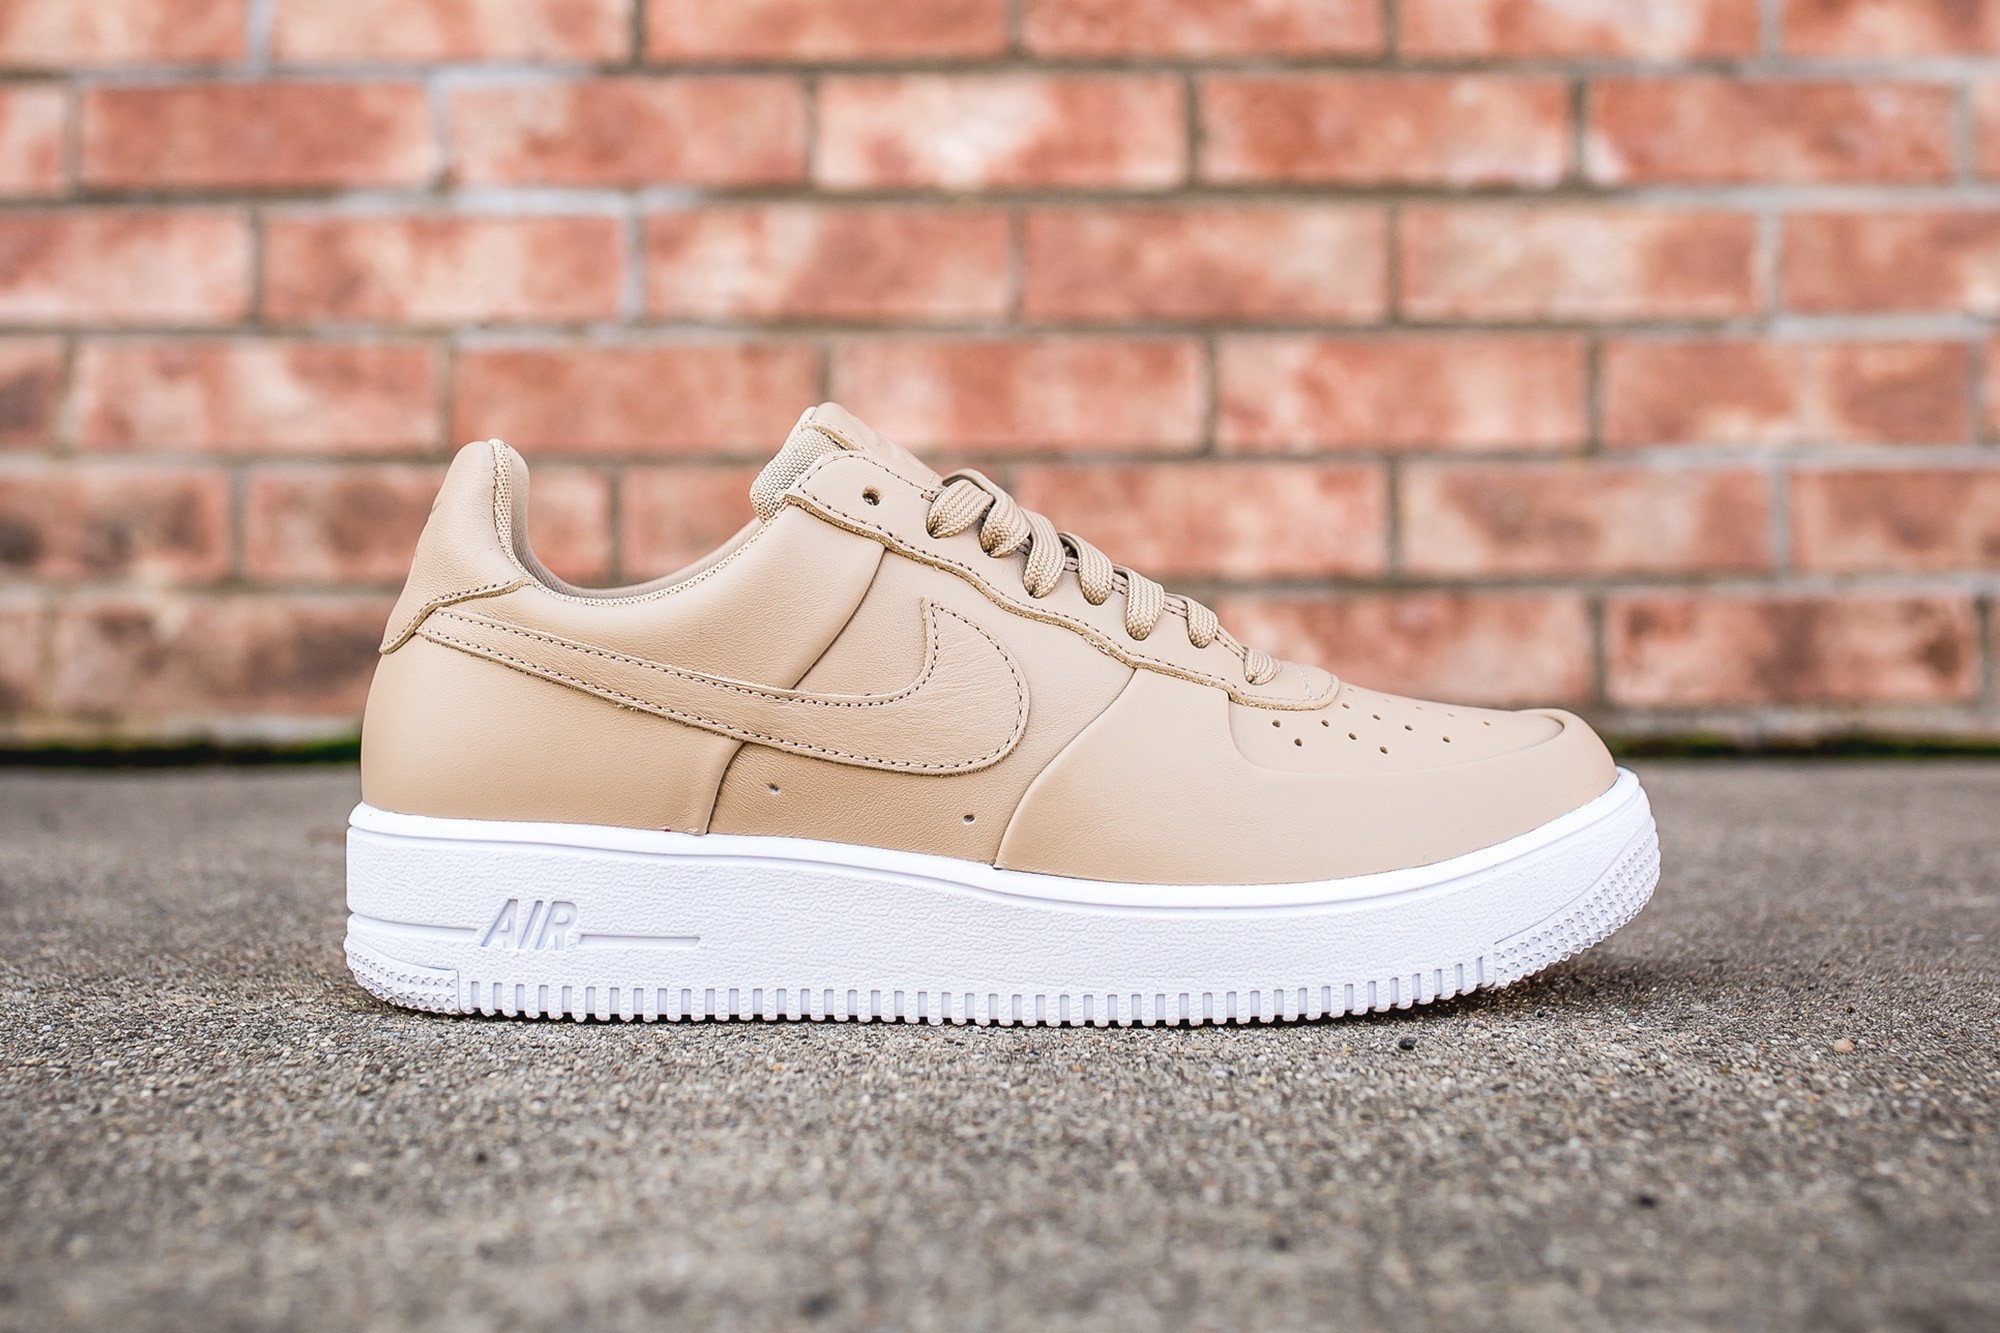 brand new 3b46a 373a1 Nike Air Force 1 Ultraforce Leather Linen